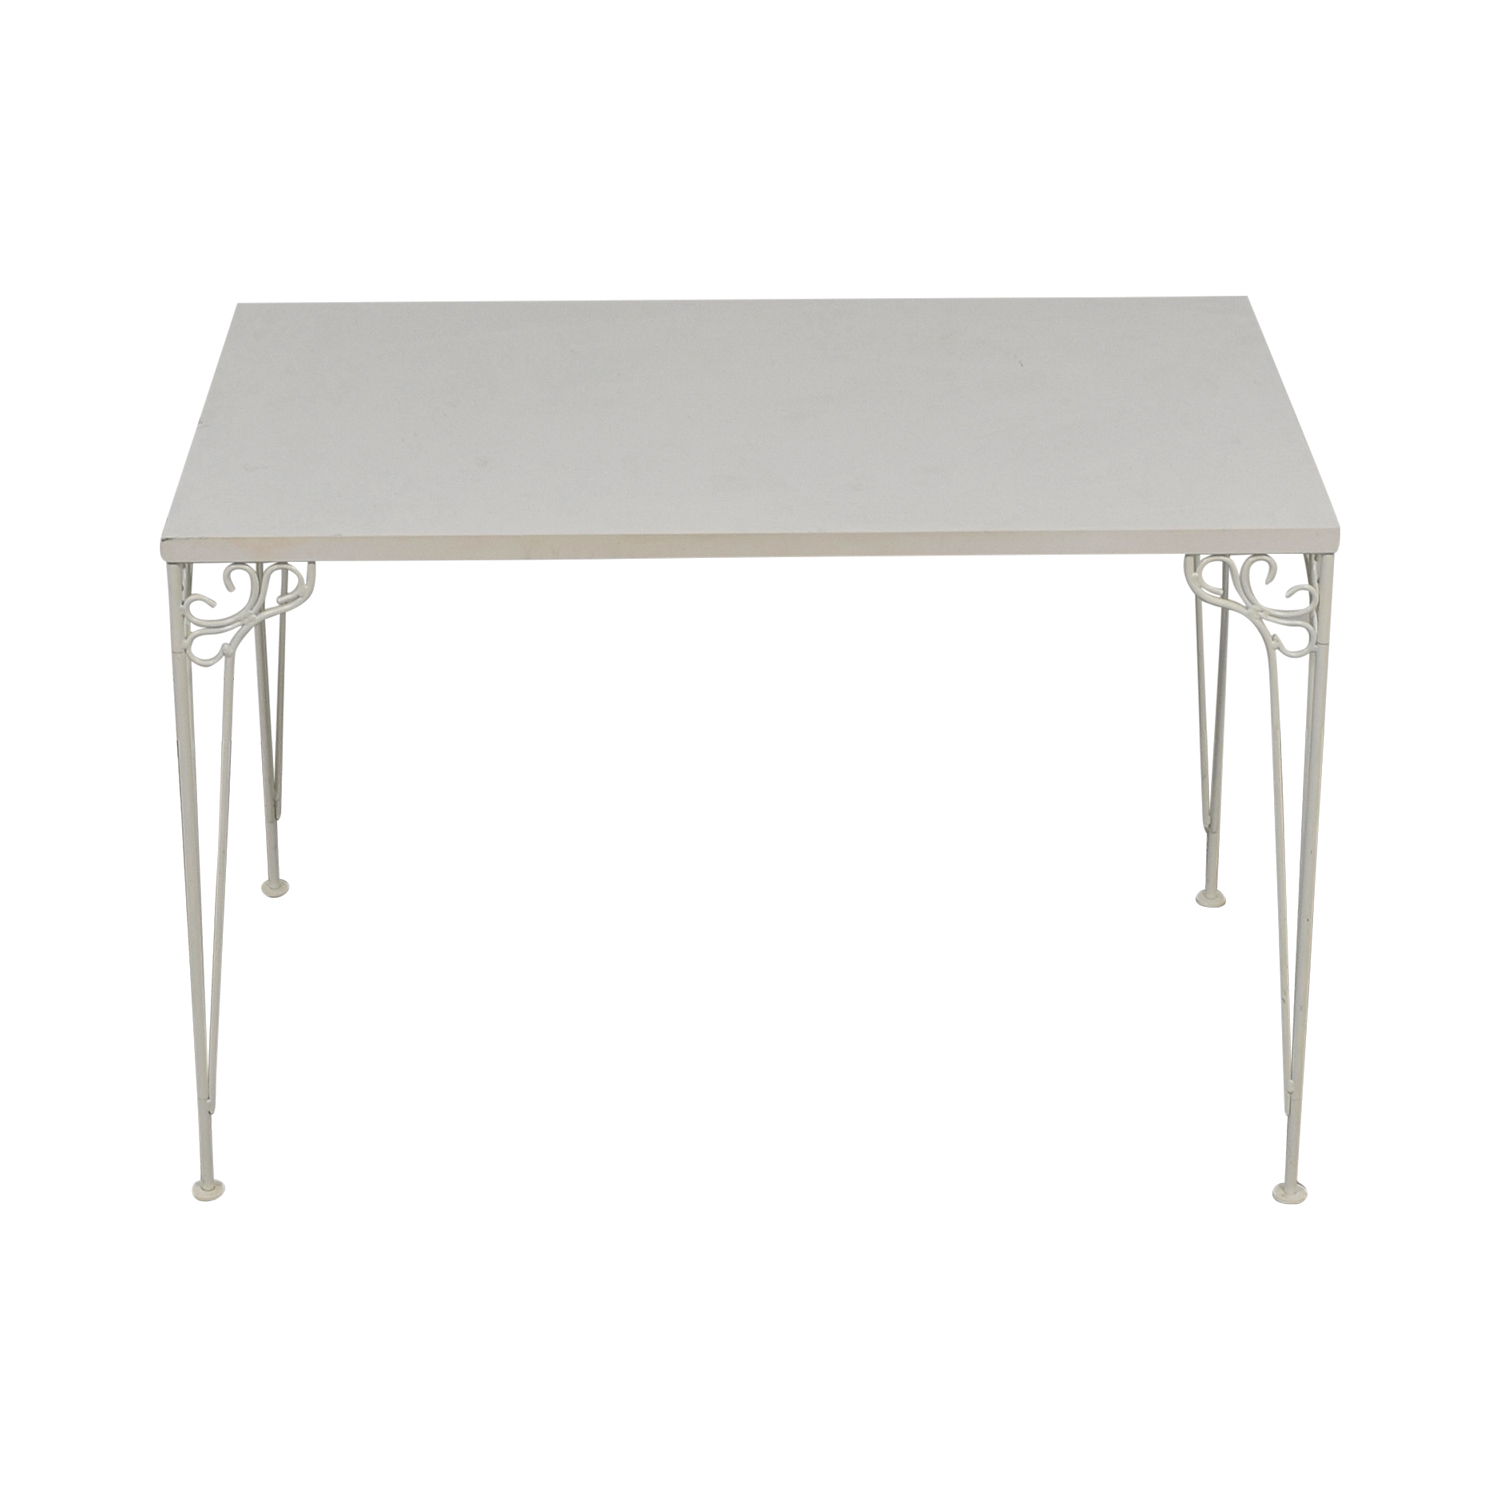 IKEA IKEA White Filigree Legged Desk discount